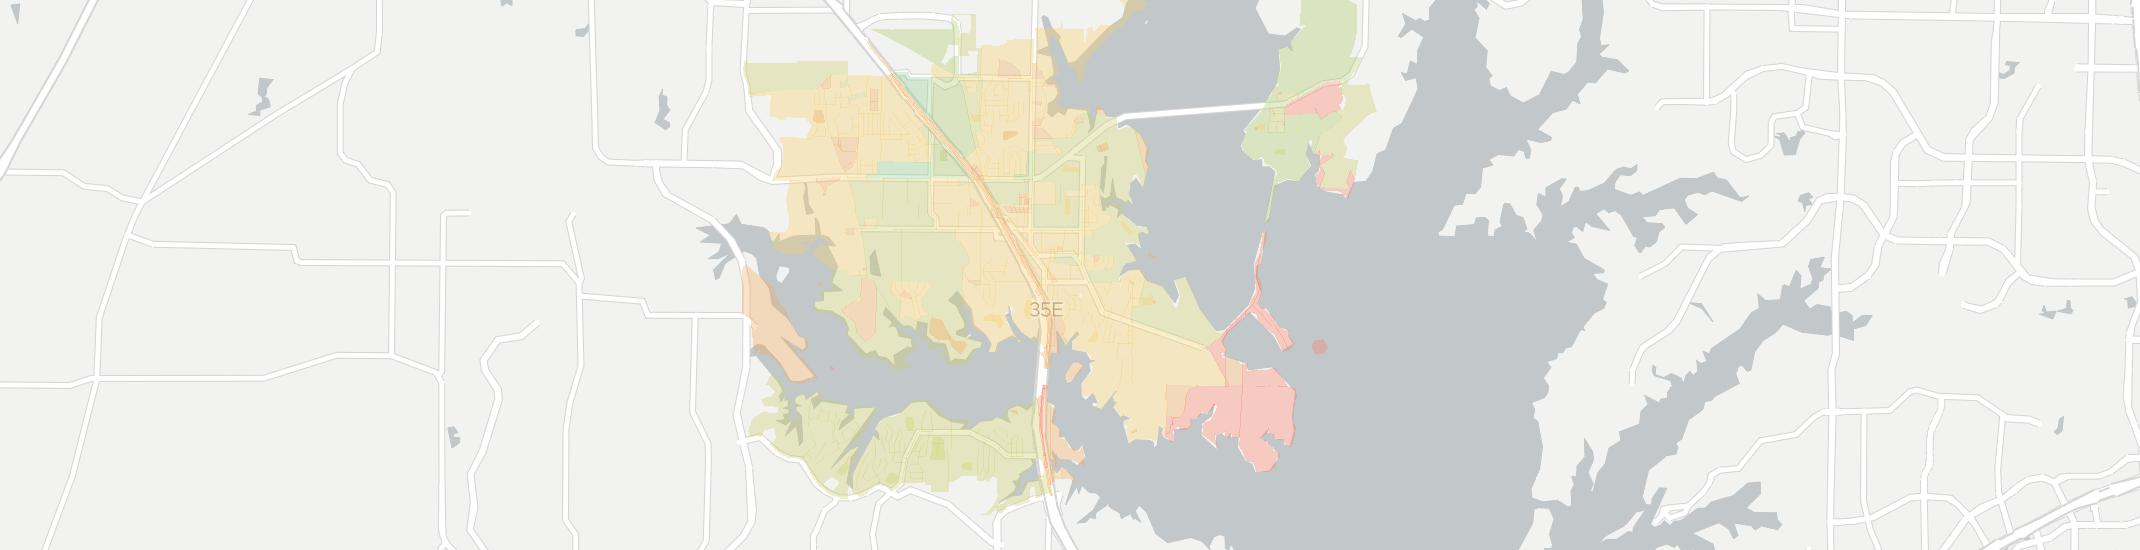 Lake Dallas Internet Competition Map. Click for interactive map.